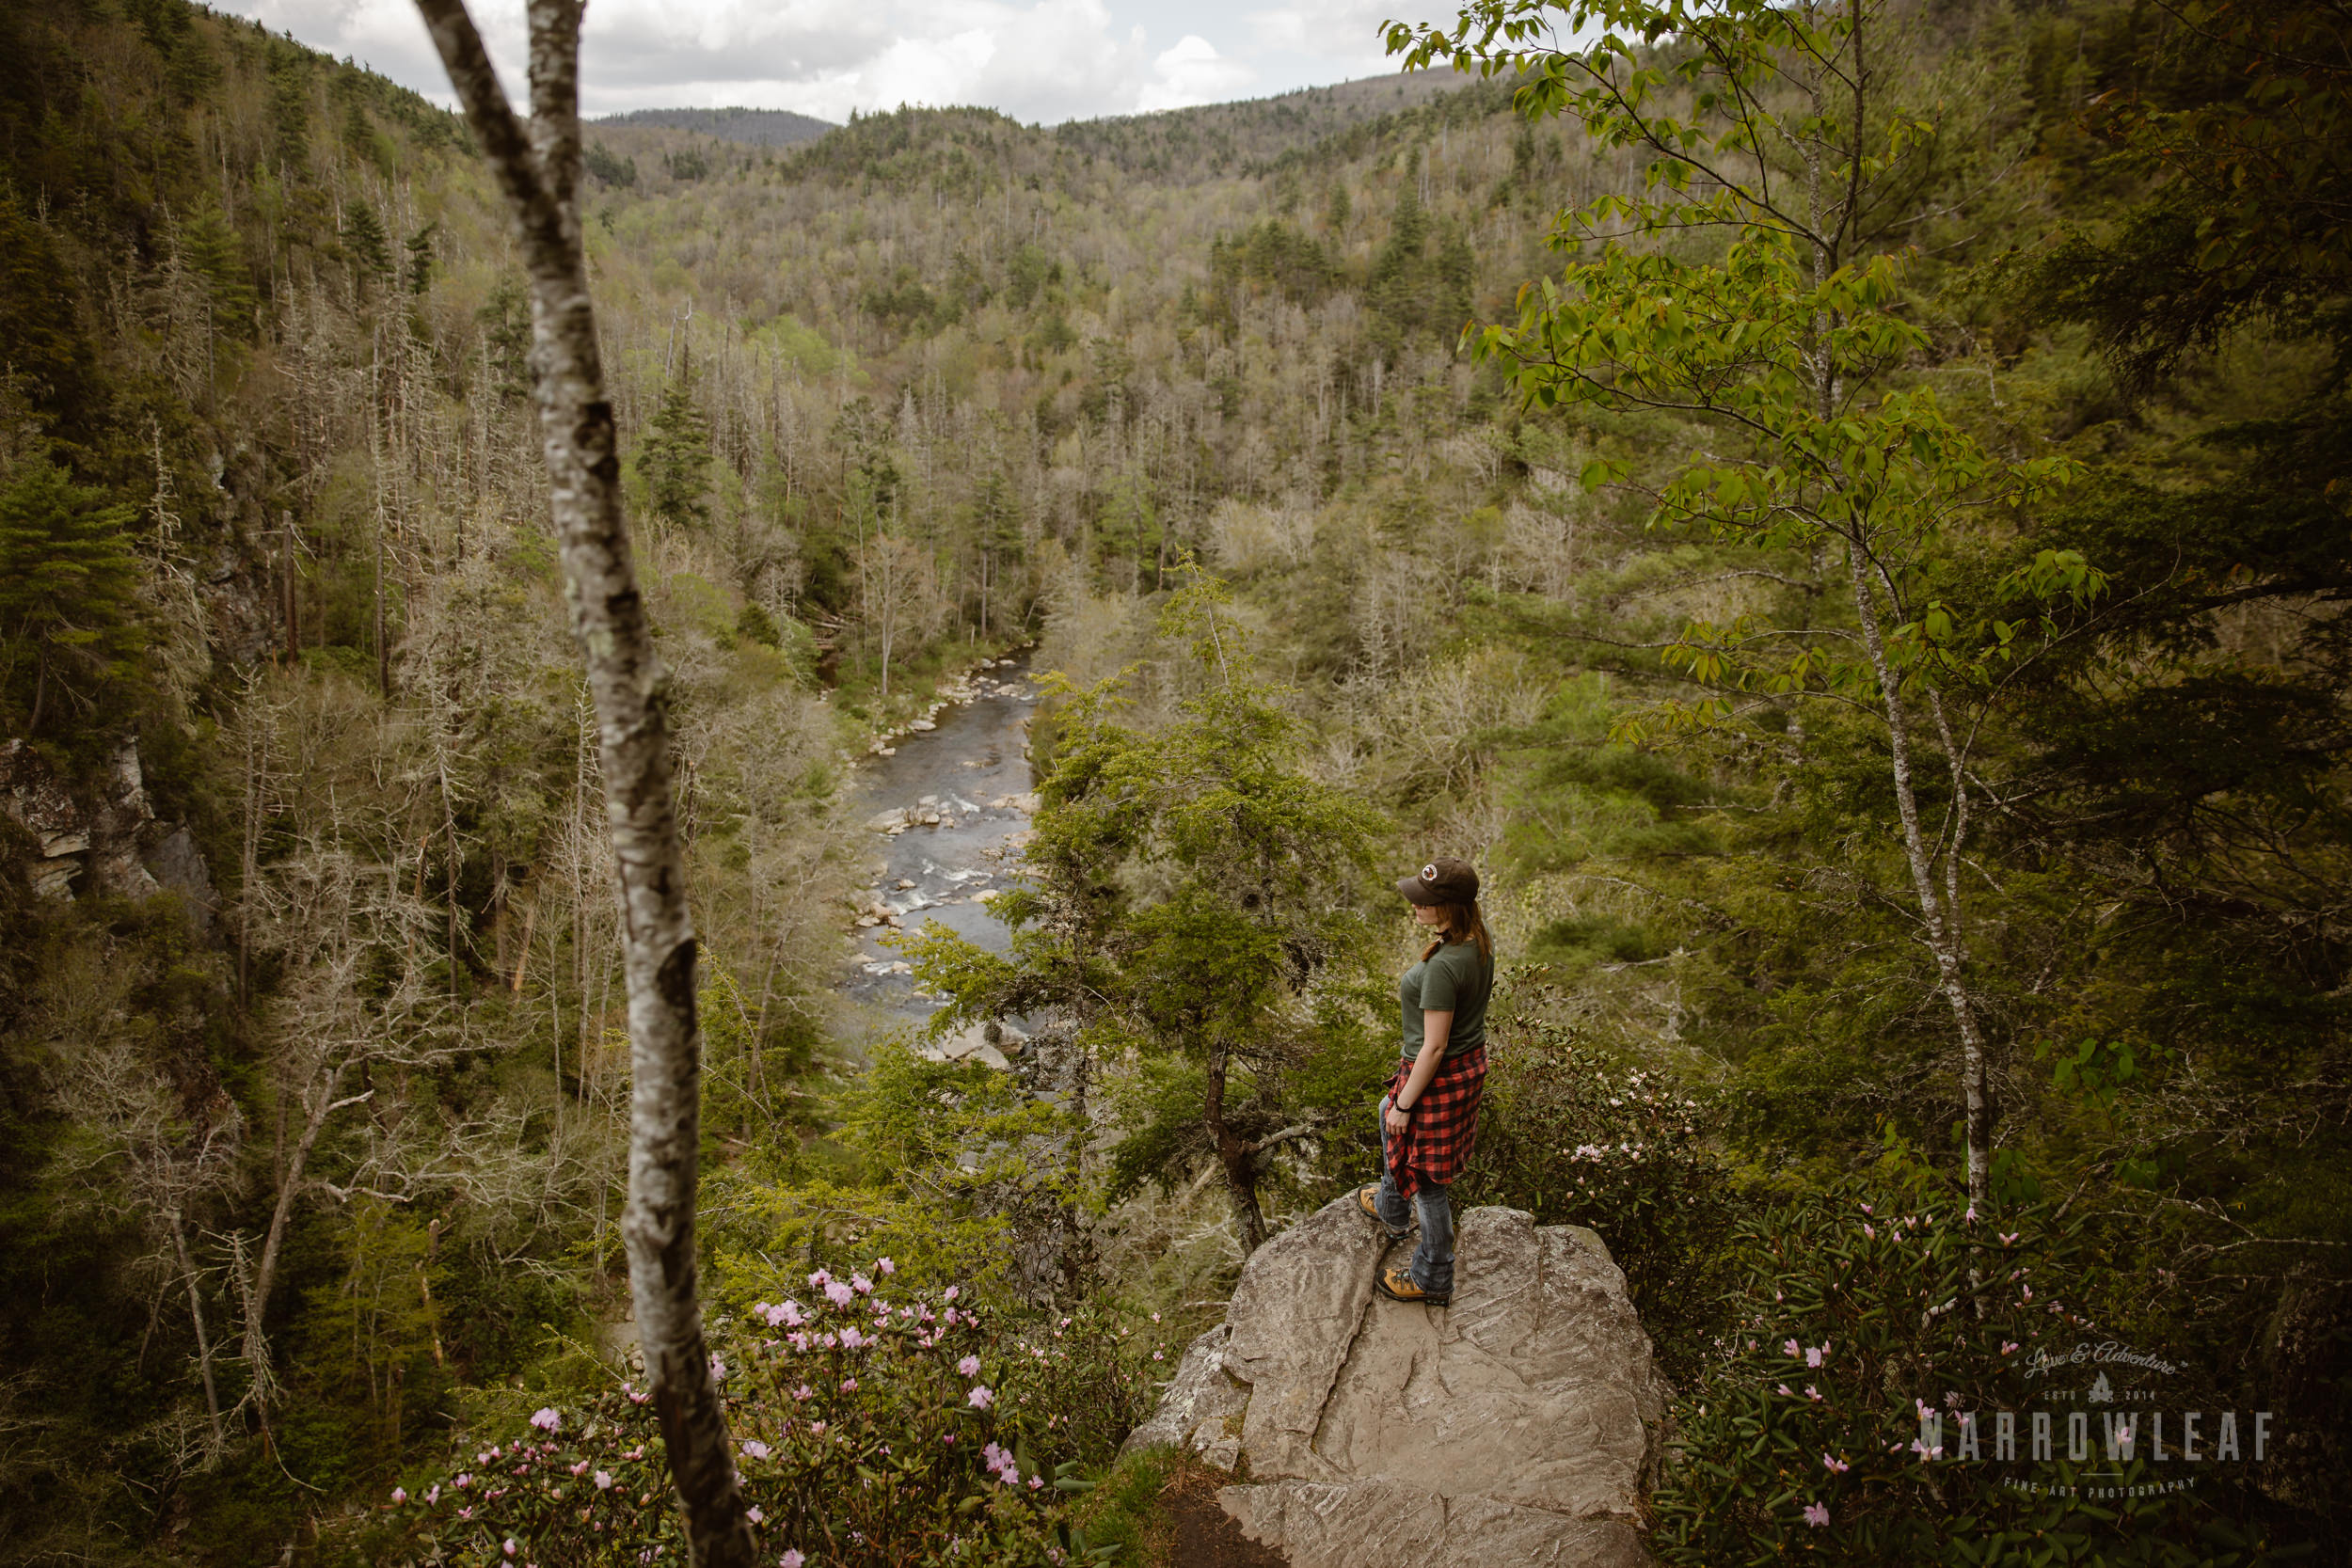 Hiking-Tennessee-waterfall-elopement-photographer-Narrowleaf_Love_and_Adventure_Photography-3093.jpg